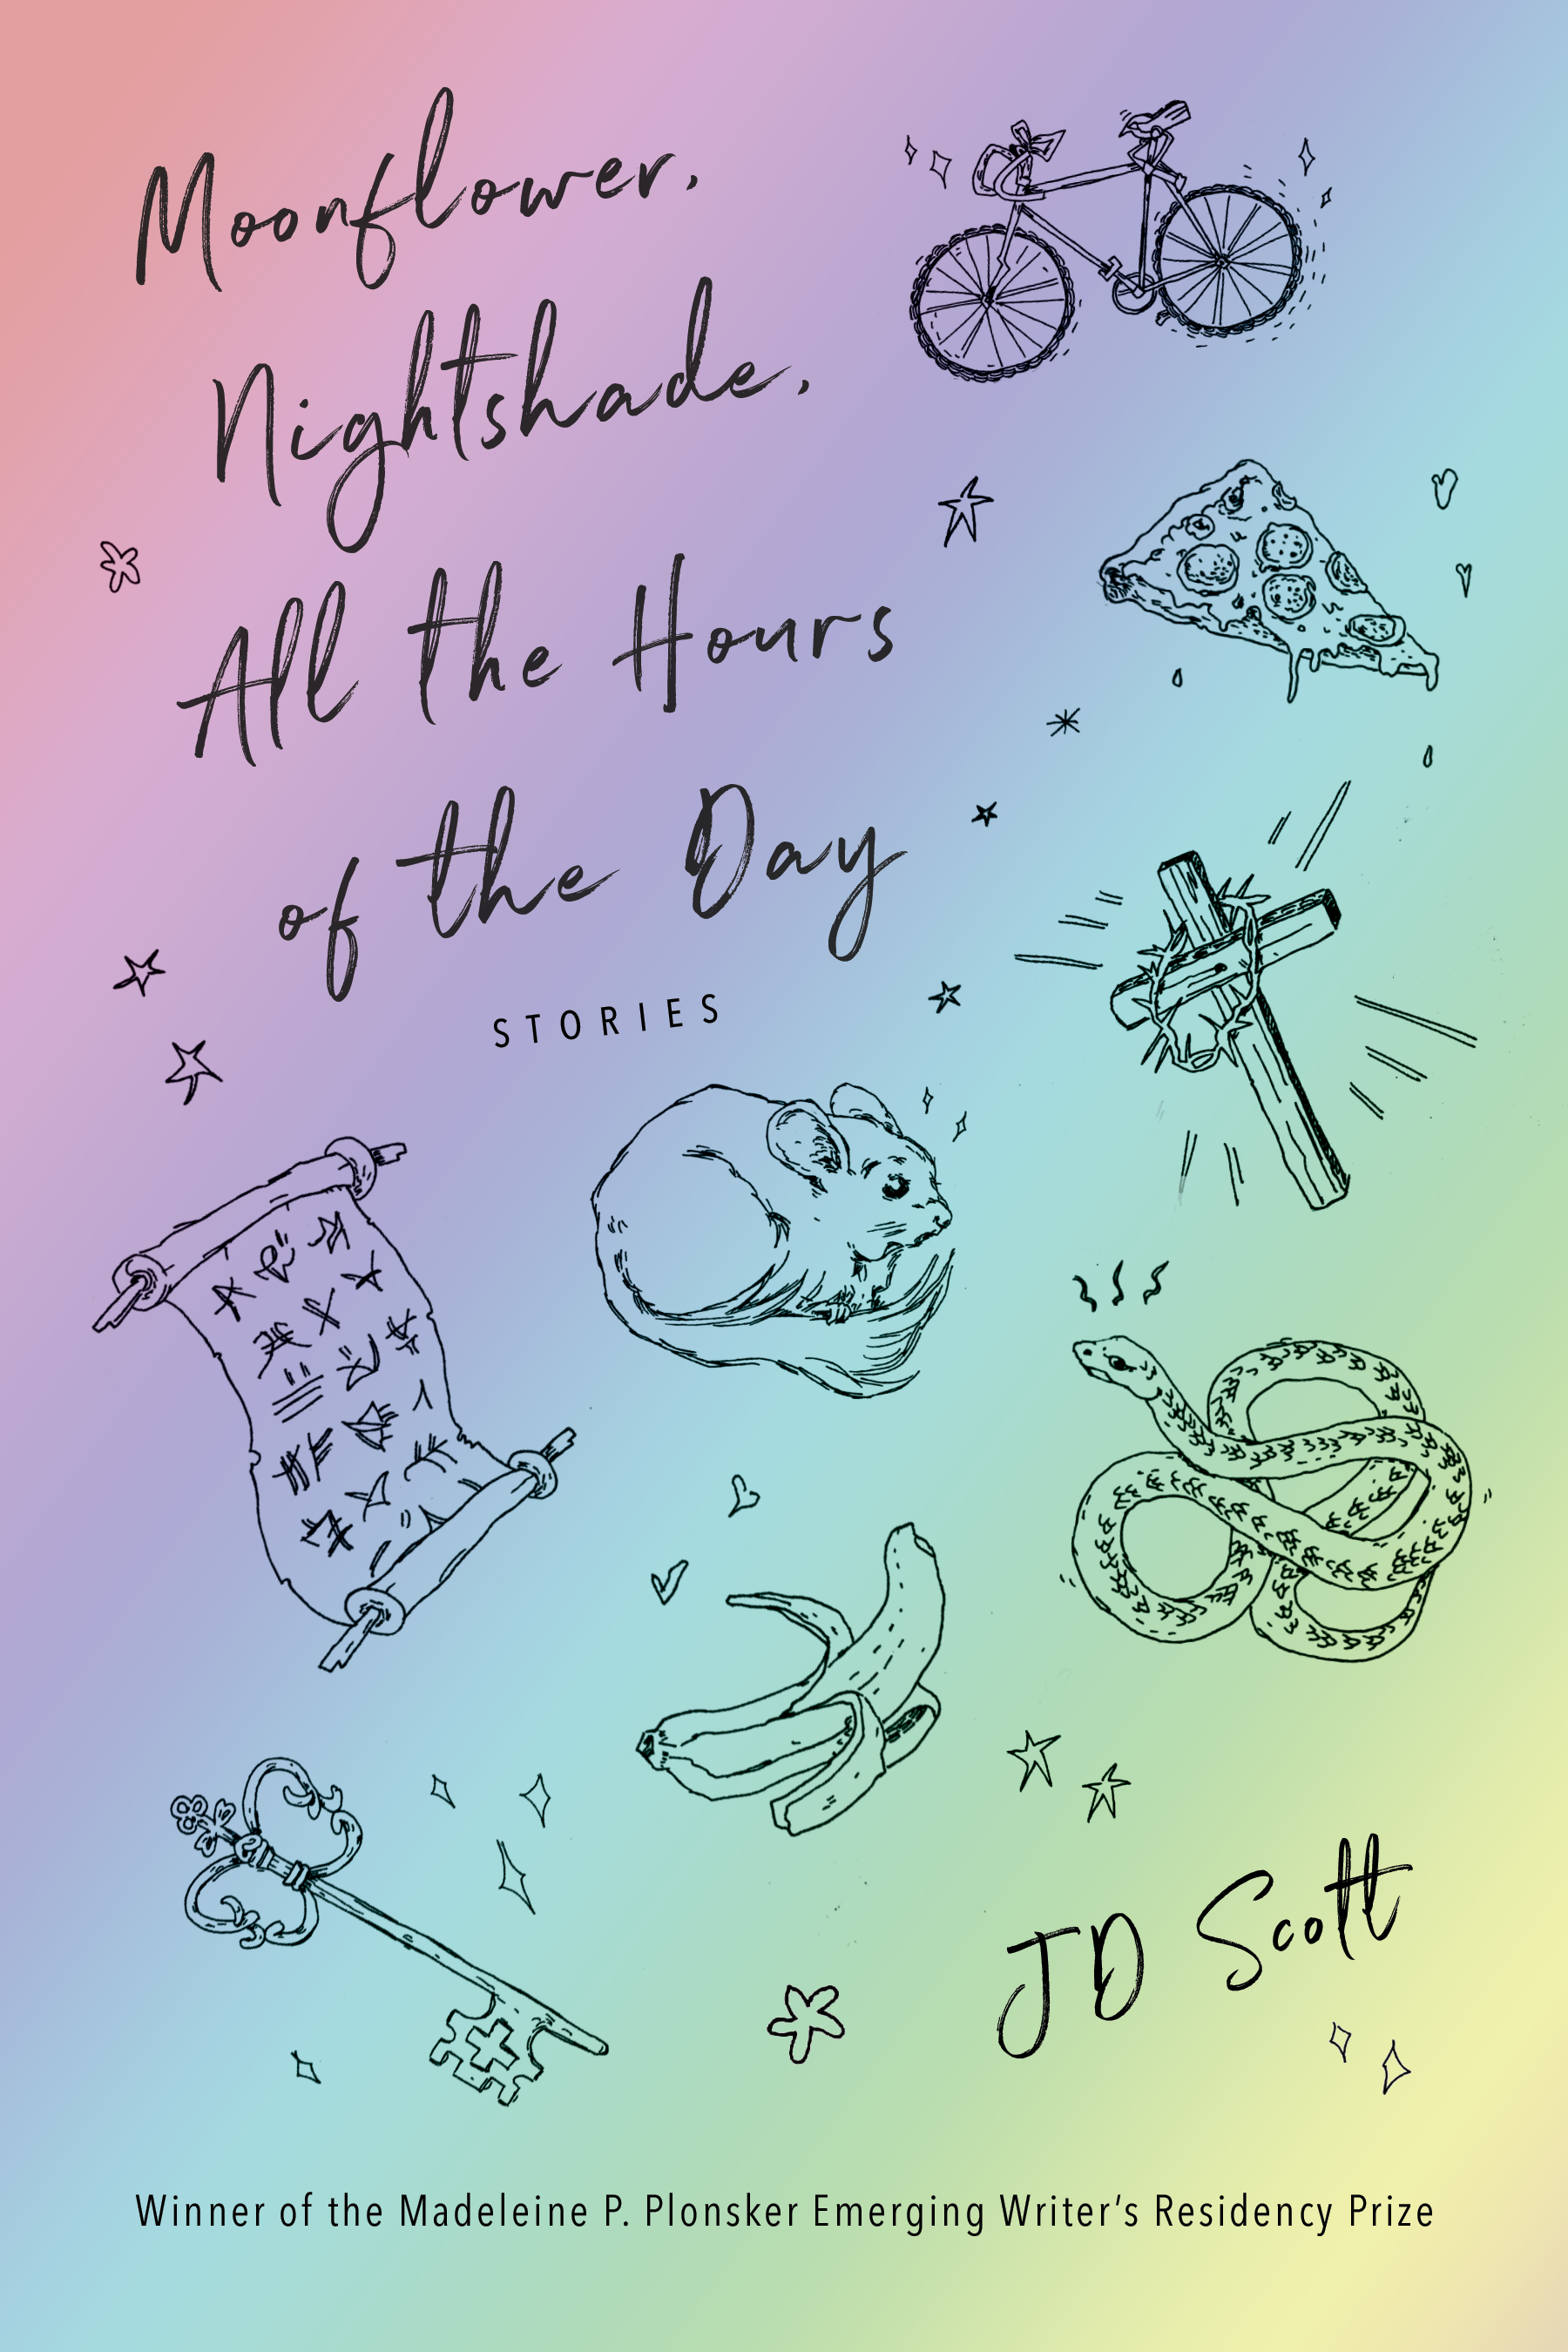 Moonflower, Nightshade, All the Hours of the Day by J.D. Scott